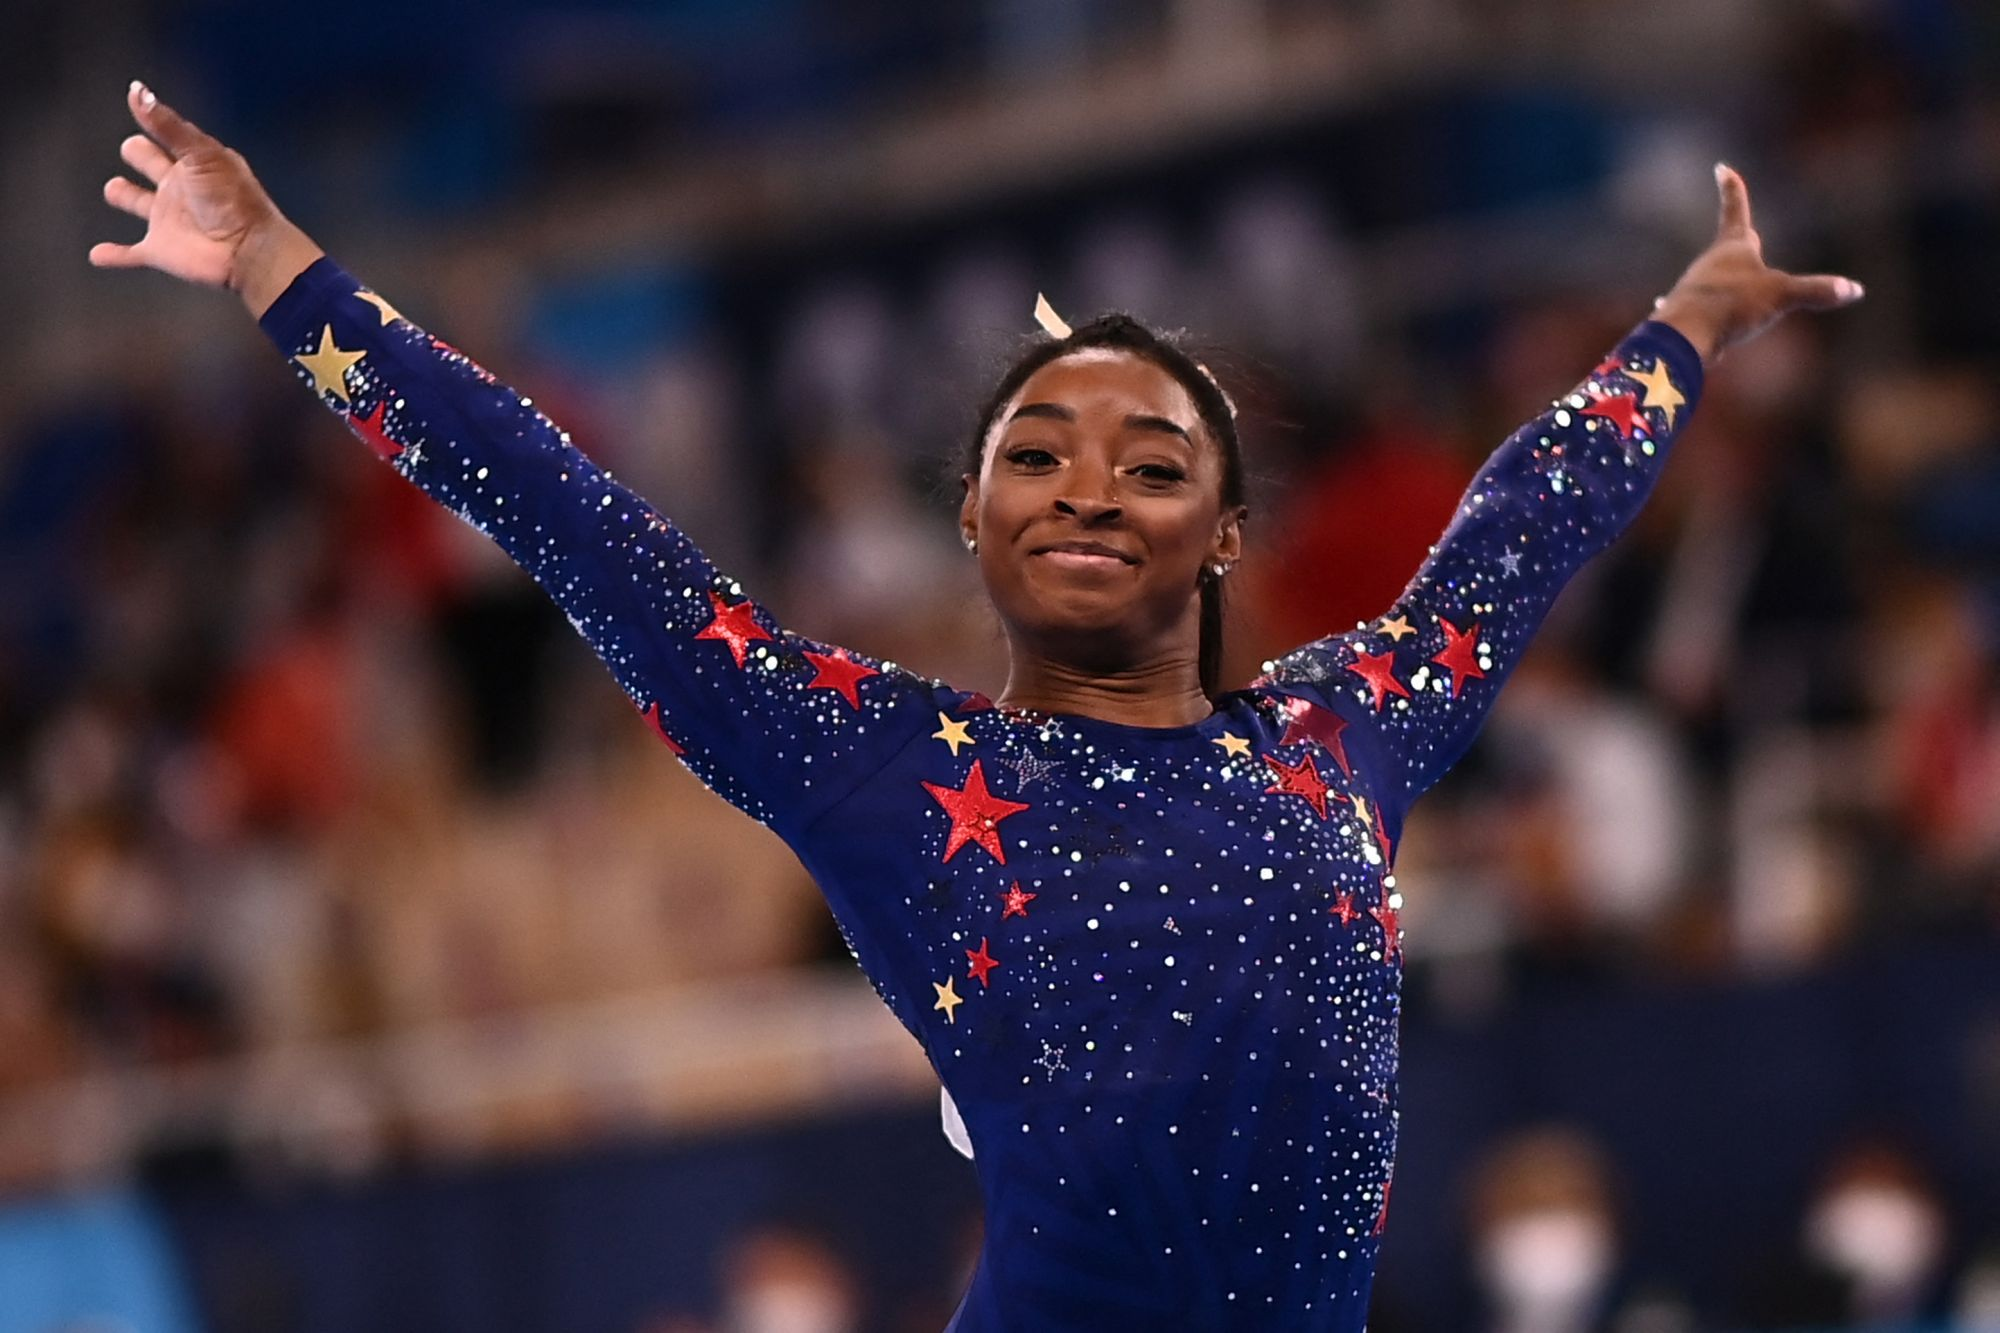 (FILES) In this file photo taken on July 25, 2021 US's Simone Biles reacts after competing in the artistic gymnastics balance beam event of the women's qualification during the Tokyo 2020 Olympic Games at the Ariake Gymnastics Centre in Tokyo. - Simone Biles withdrew from Olympics all-around gymnastics on July 28, 2021. (Photo by Loic VENANCE / AFP)